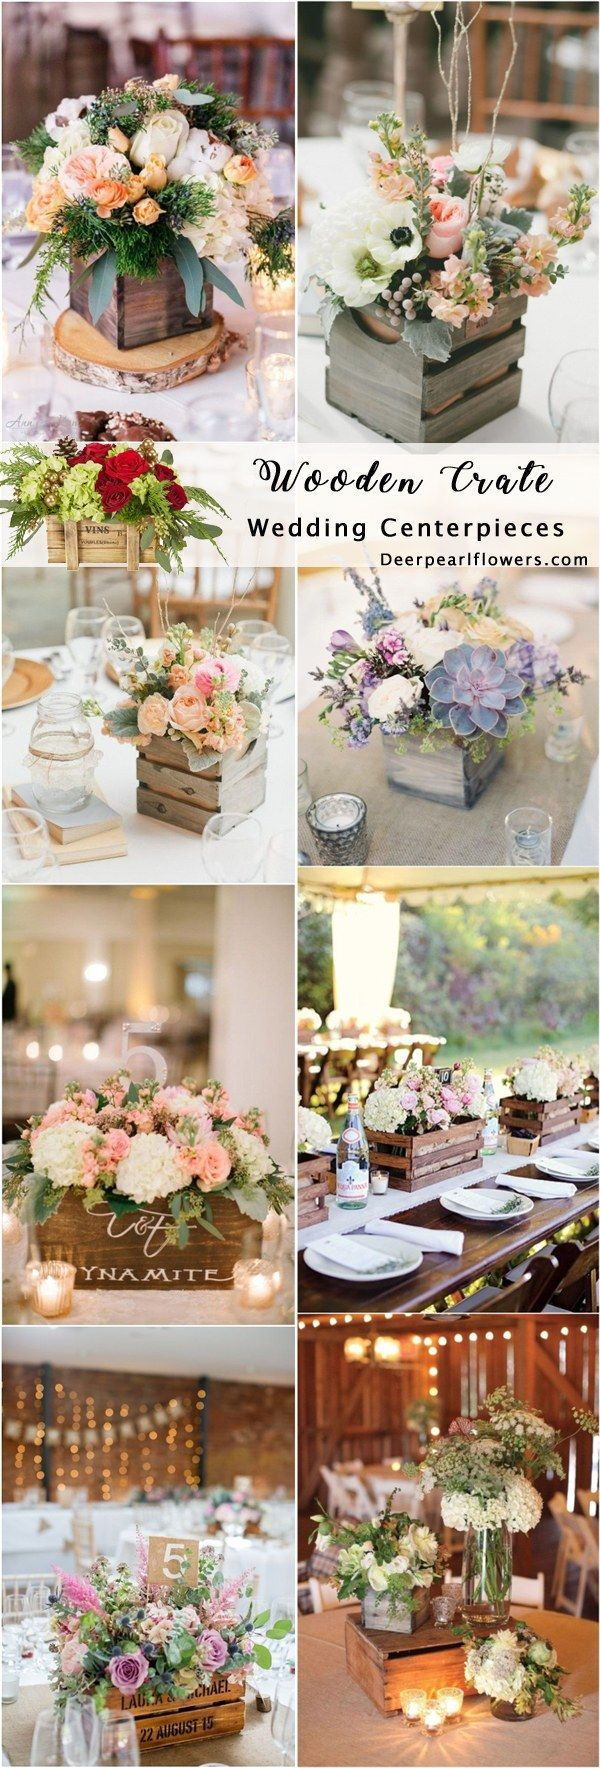 Rustic Country Wooden Crate Wedding Centerpieces Rusticweddings Countryweddings Http Www